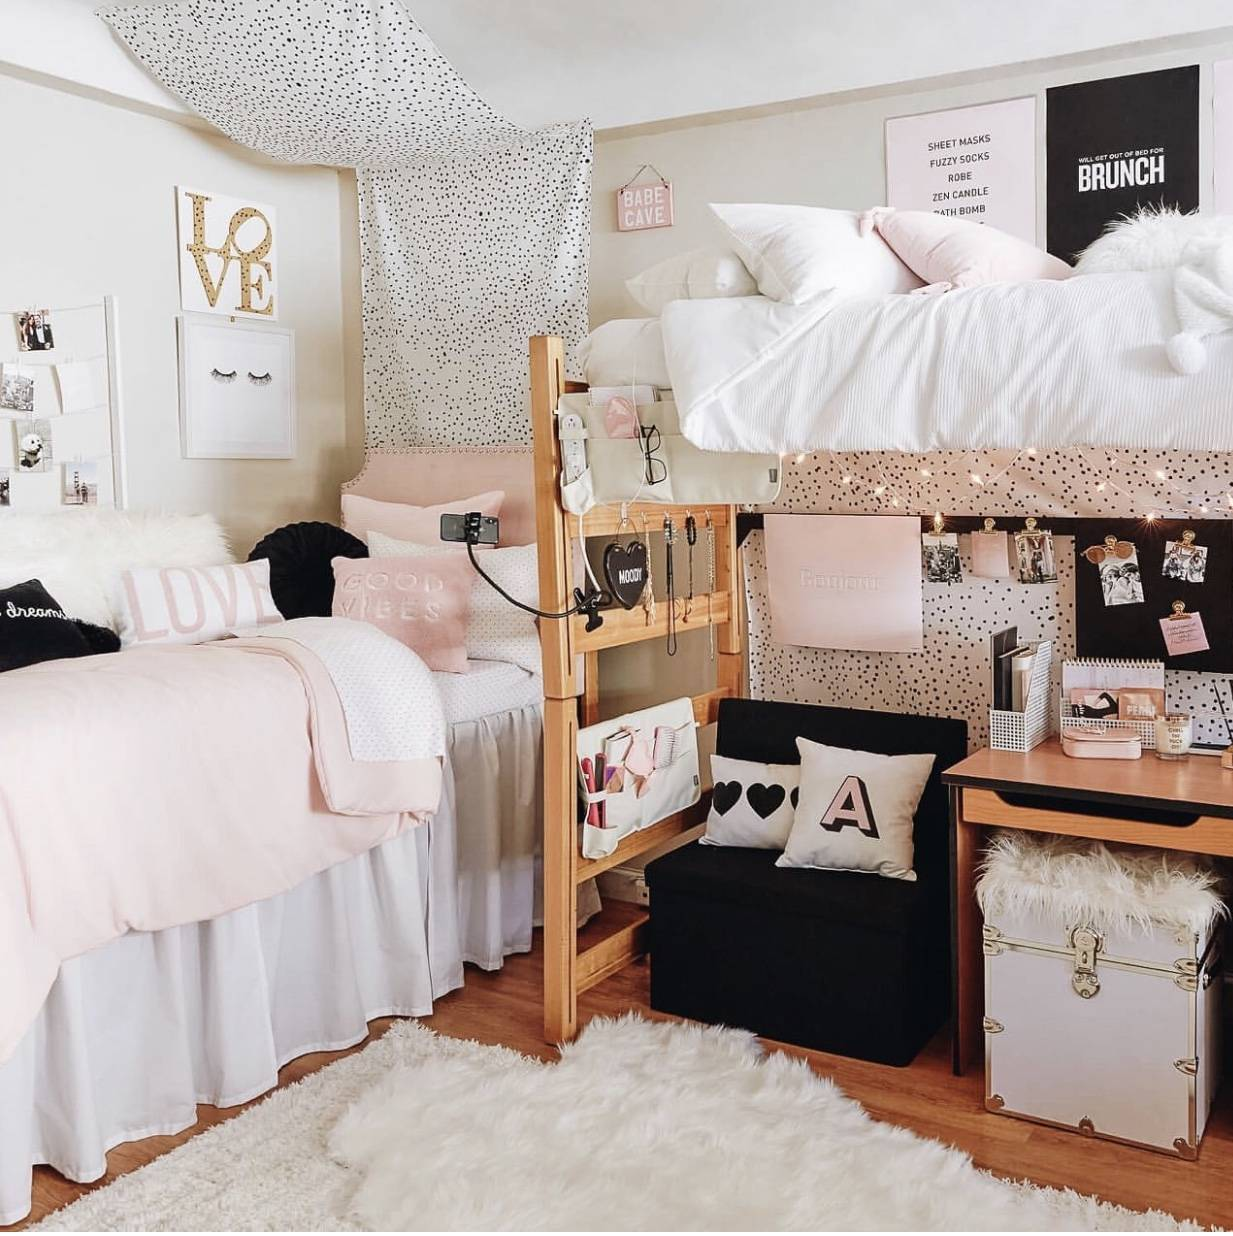 VSCO Room Ideas: How to Create a Cute Vsco Room - The Pink ... on Simple But Cute Room Ideas  id=33908